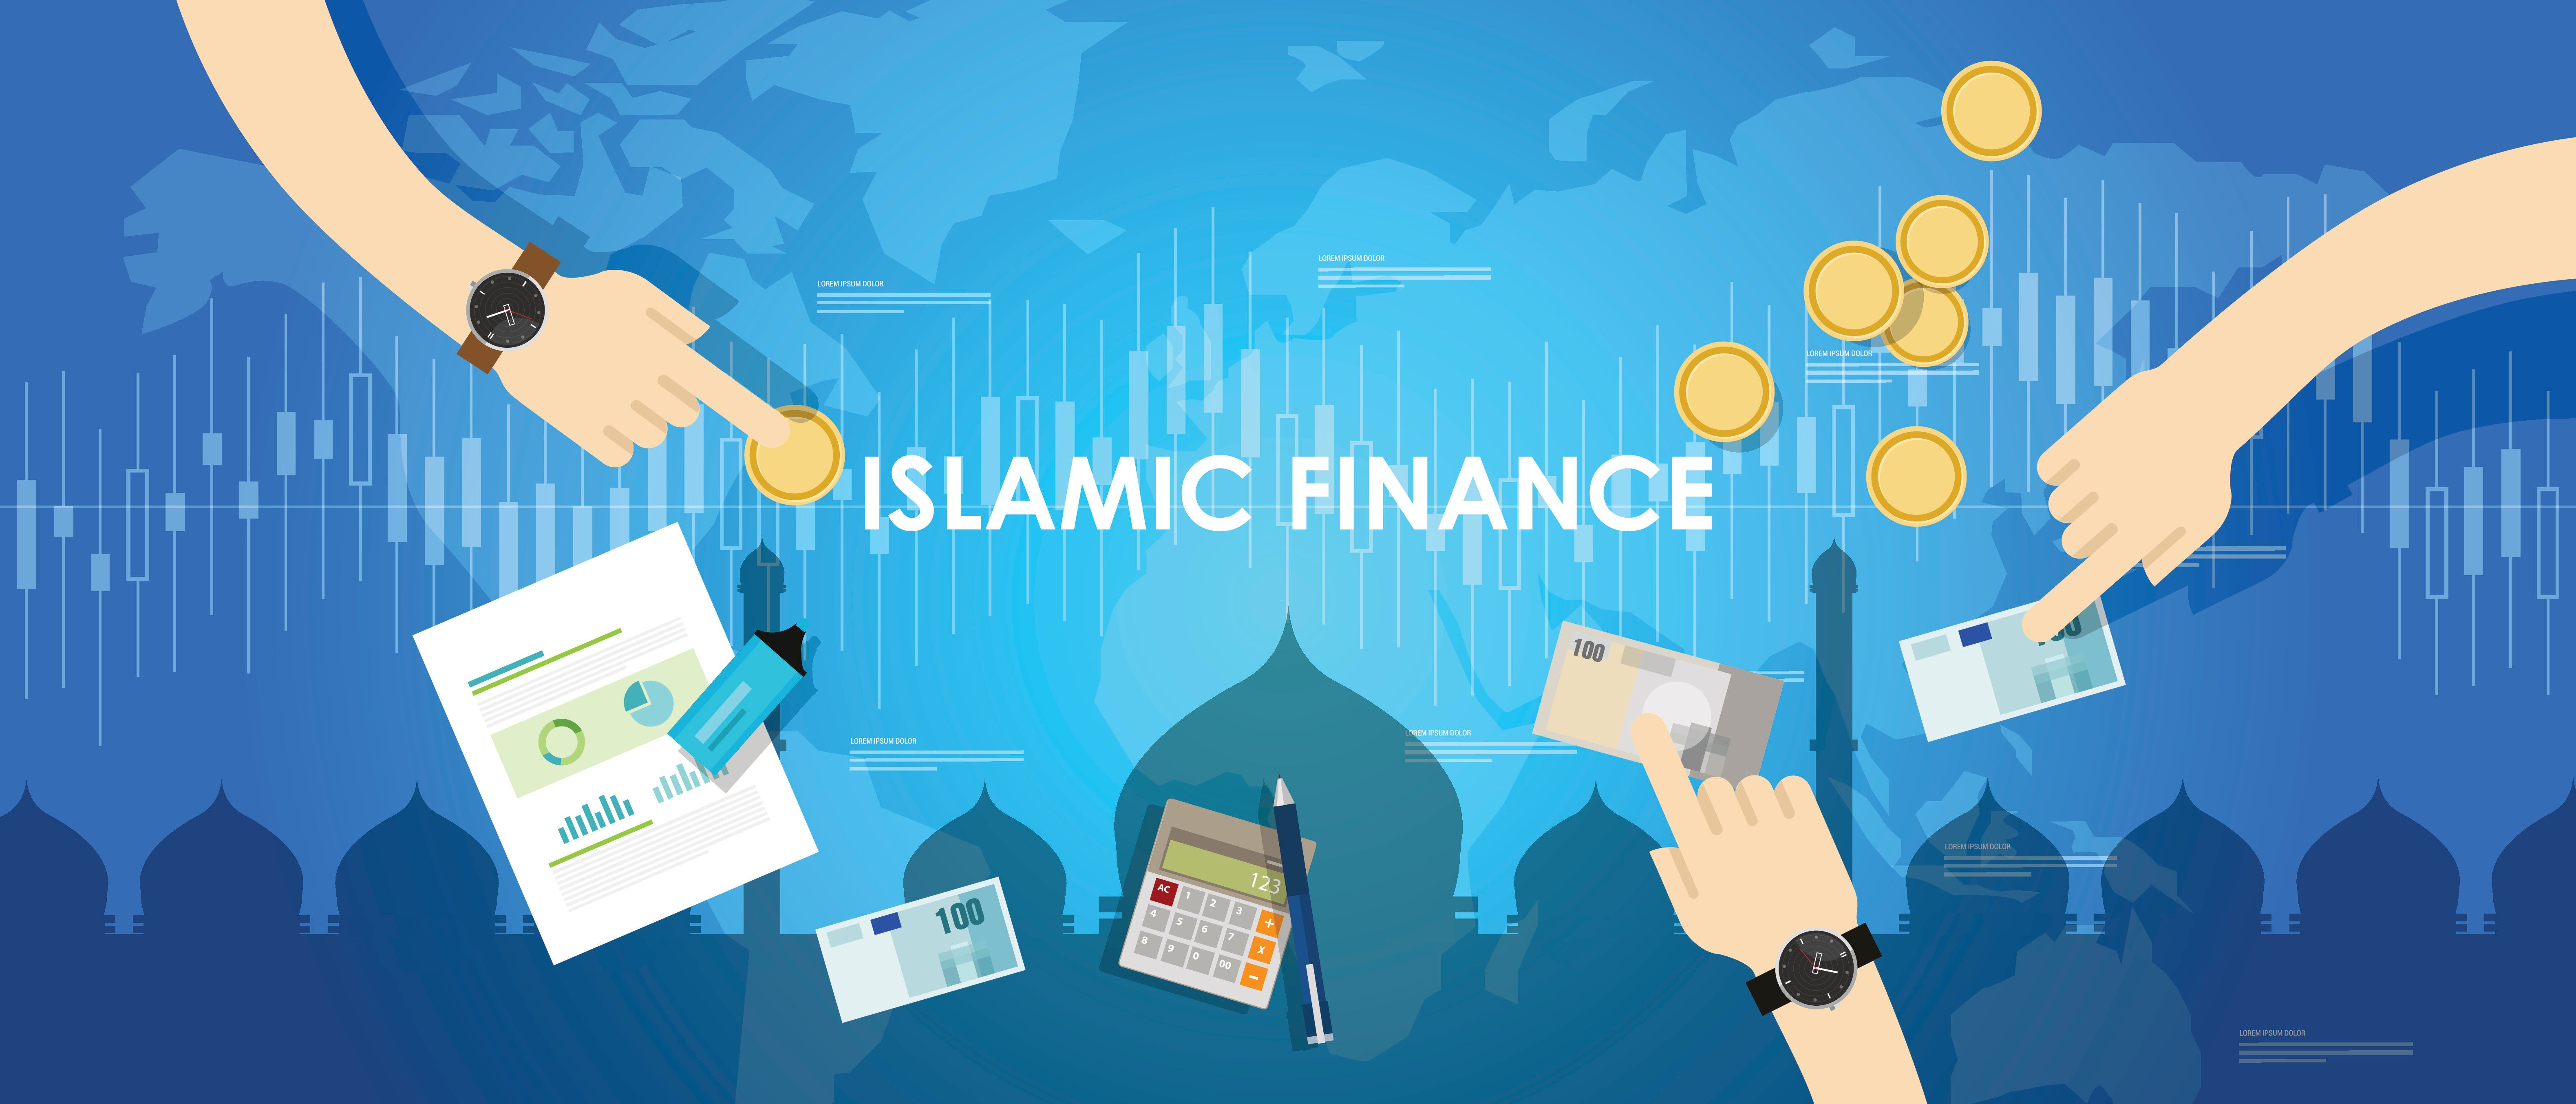 Un colloque international sur la finance islamique prochainement à